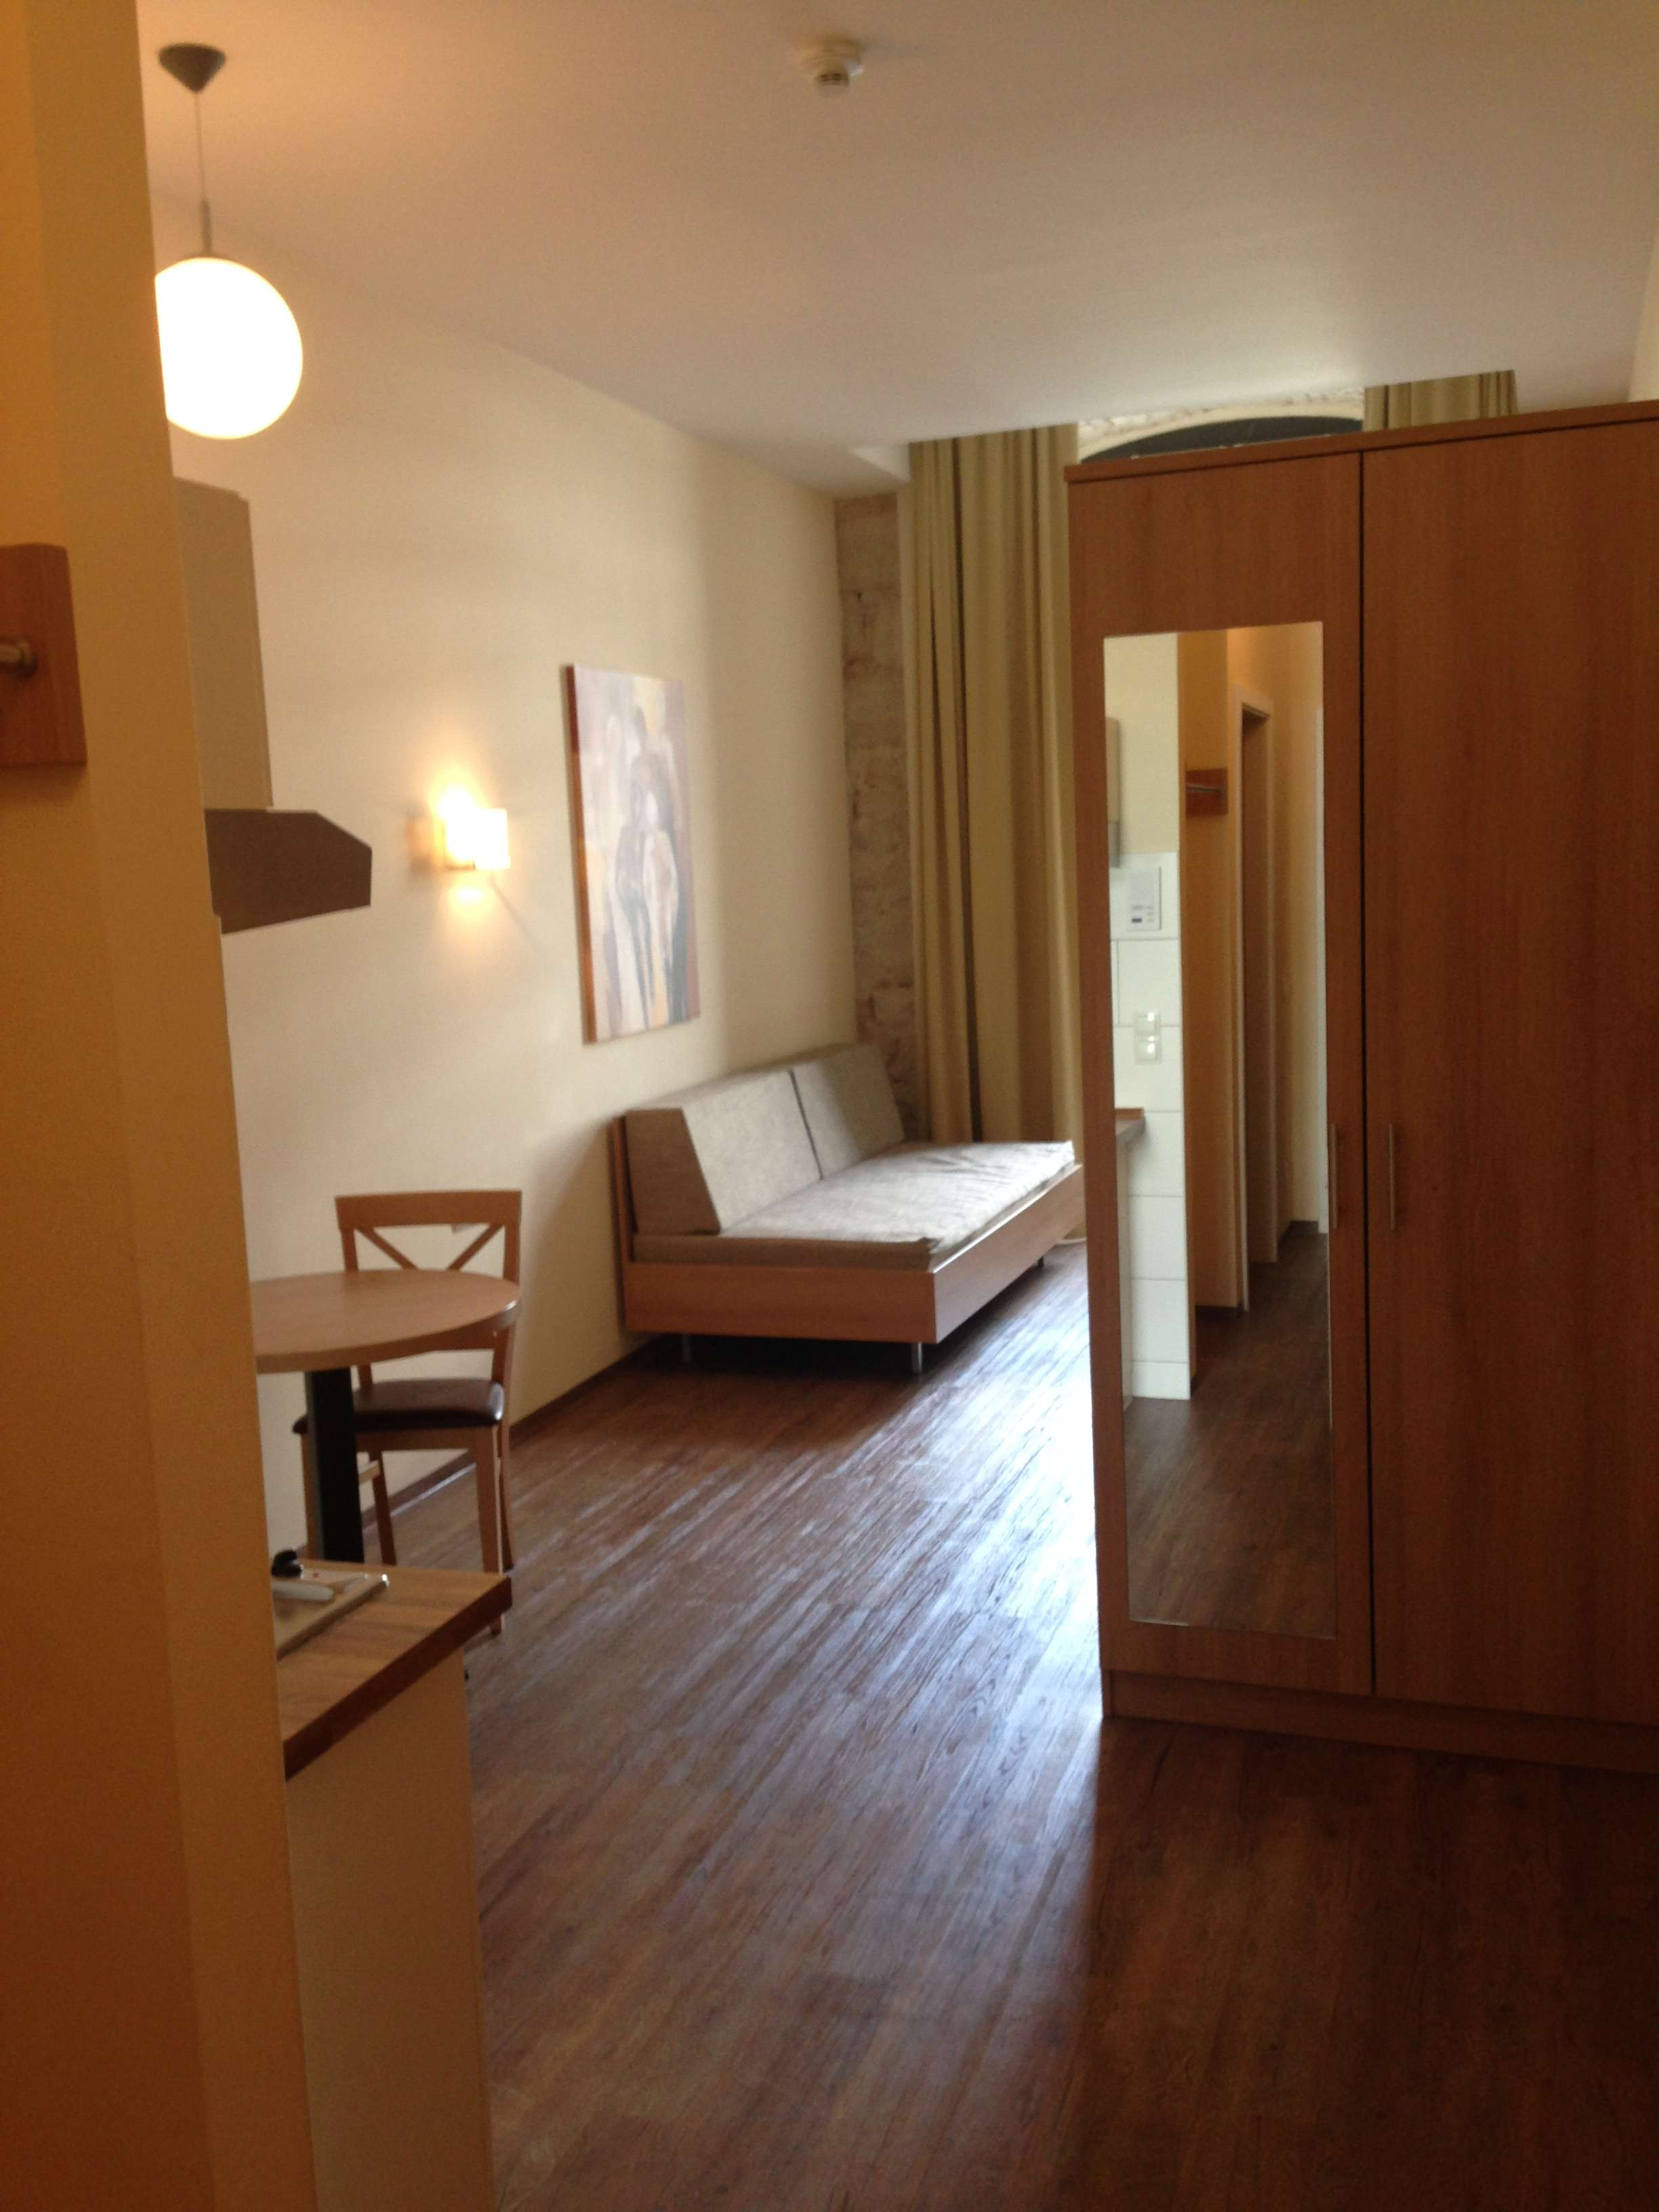 1 WG Zimmer in 3-Zimmerwohnung; Frei ab 01.07.2019 in Insel (Bamberg)